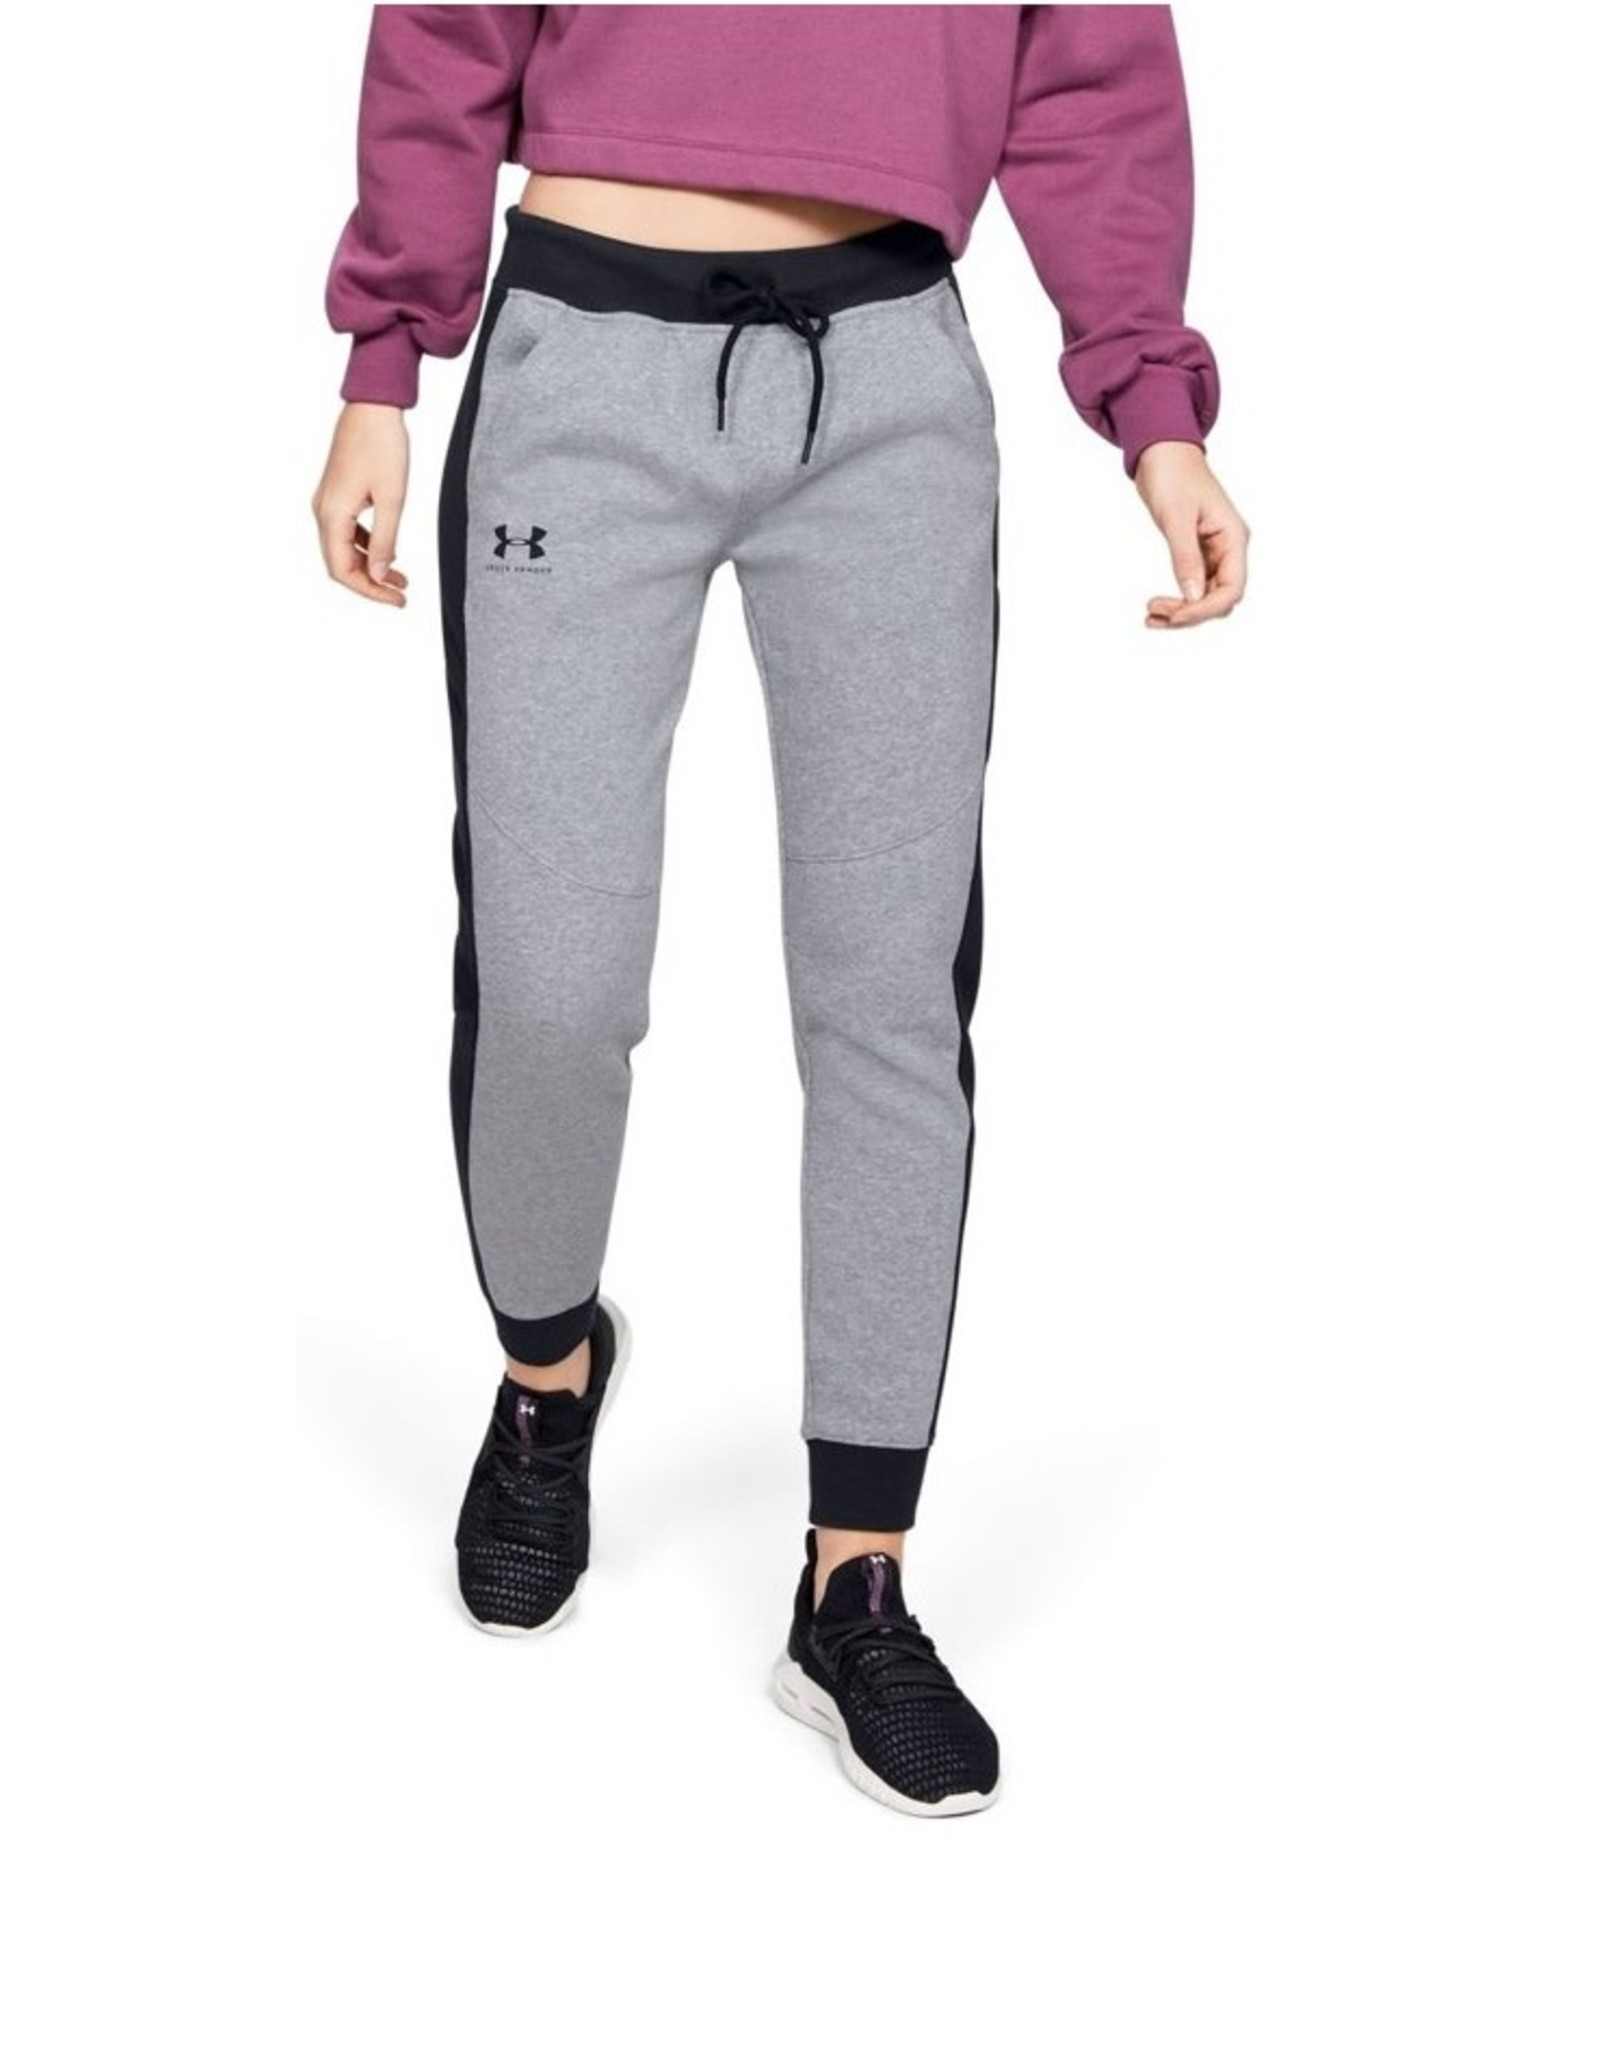 Under Armour Rival Fleece Graphic Novelty Pant-GRY-MD